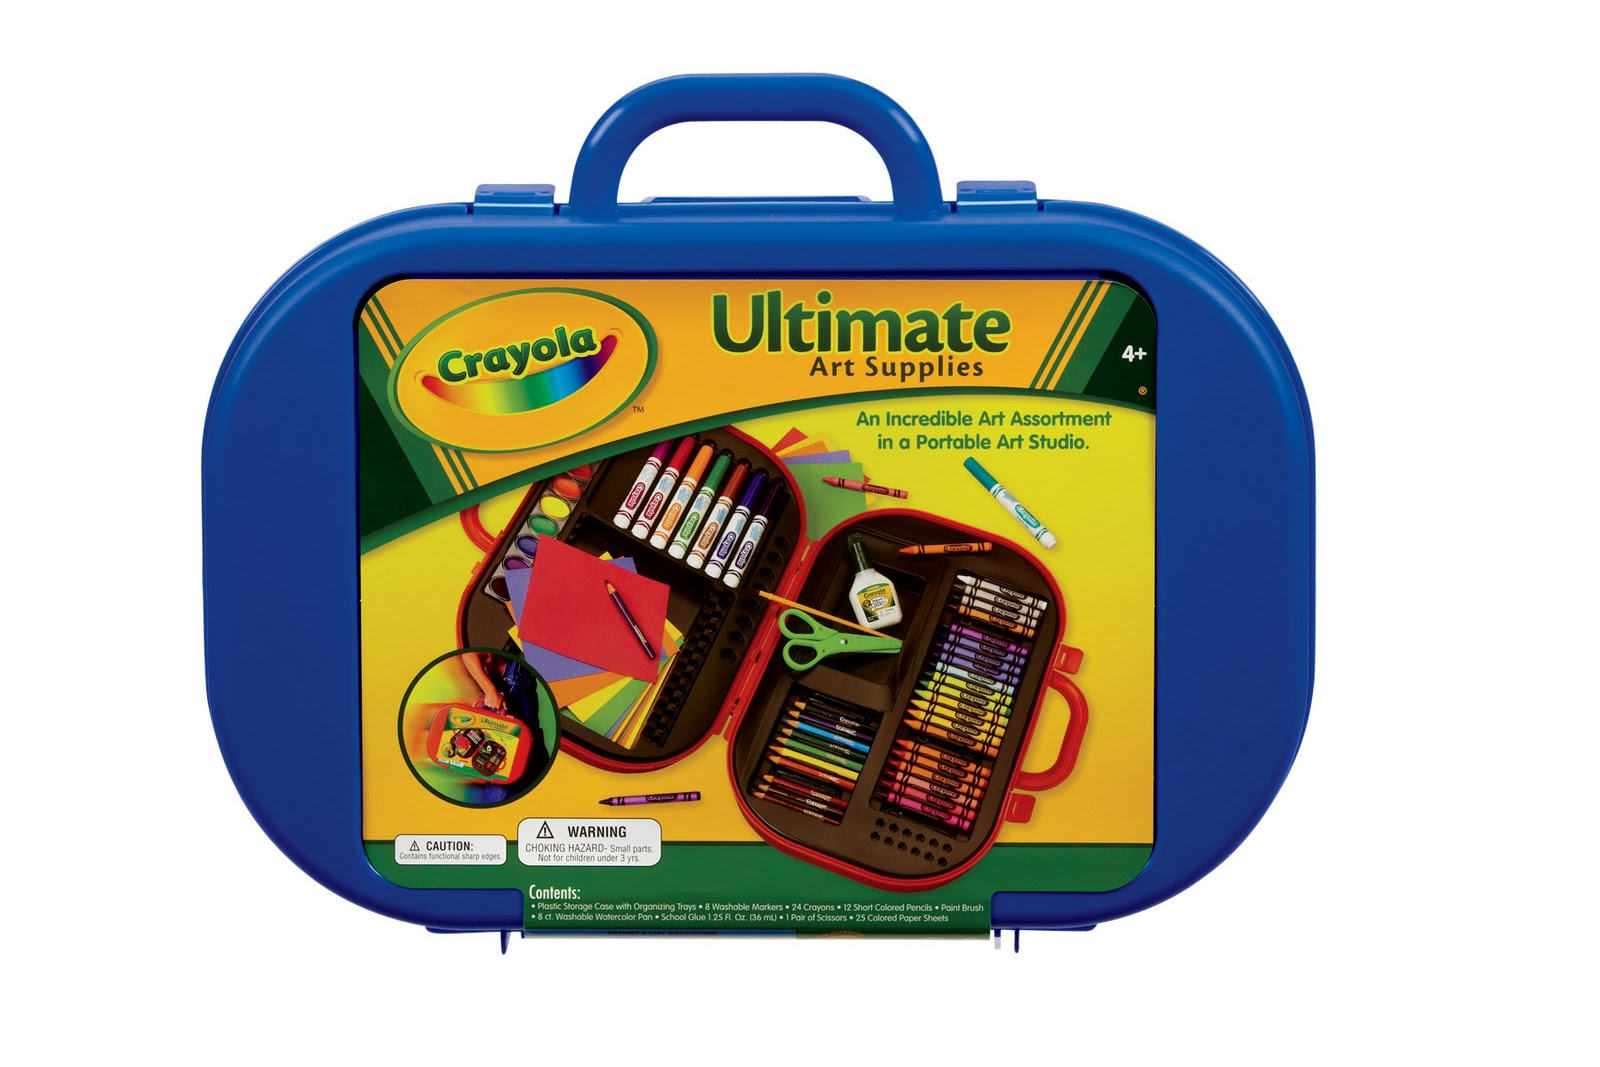 Buy One Disney Jumbo Coloring And Activity Book For 299 Pick Up Another A Cars Fan Free Save 5 On Crayola Ultimate Art Supplies